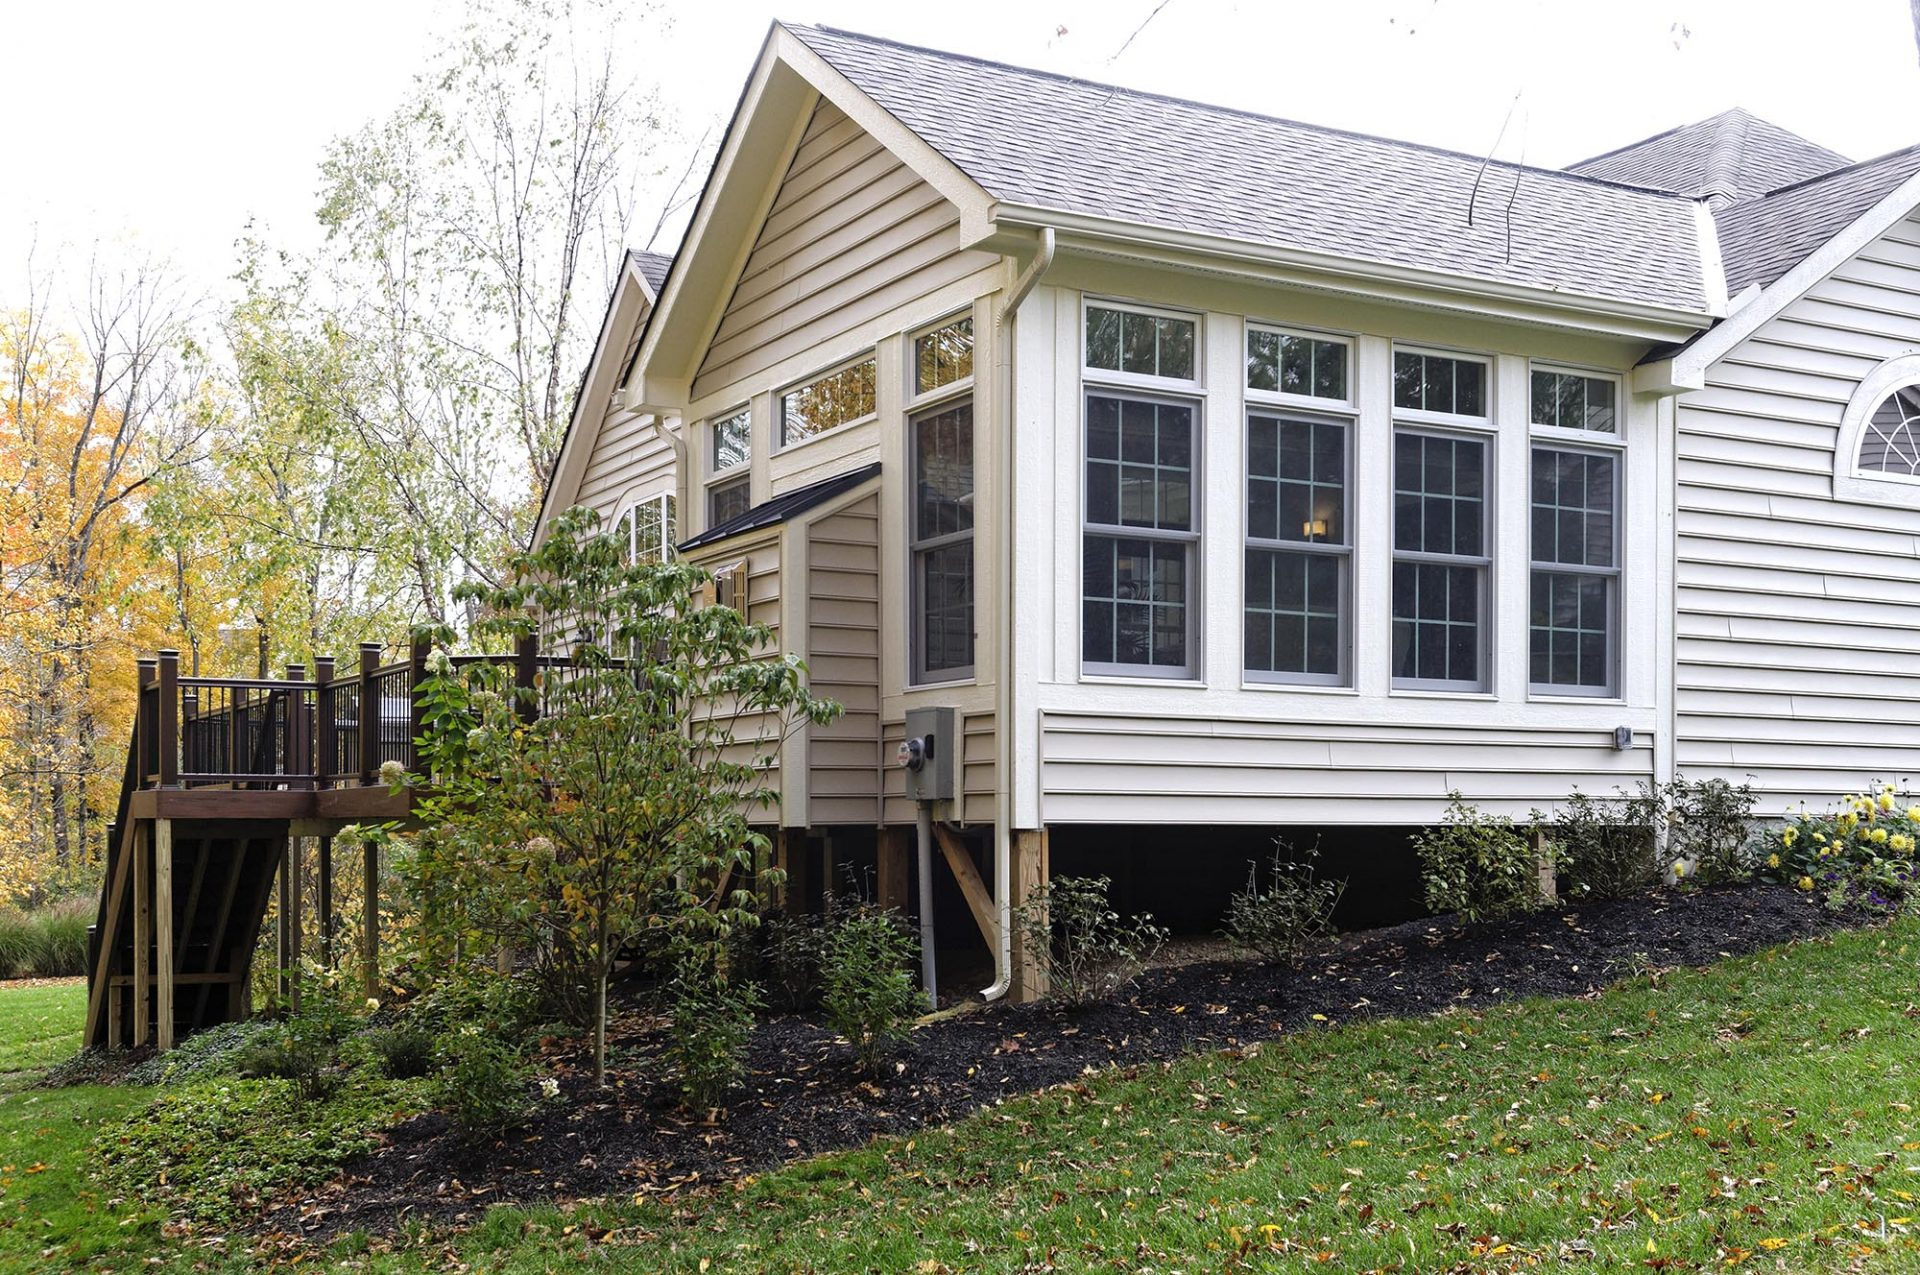 Room Addition, exterior, Sunroom, porch, Dave Fox, Remodel, deck, stairs, patio, siding